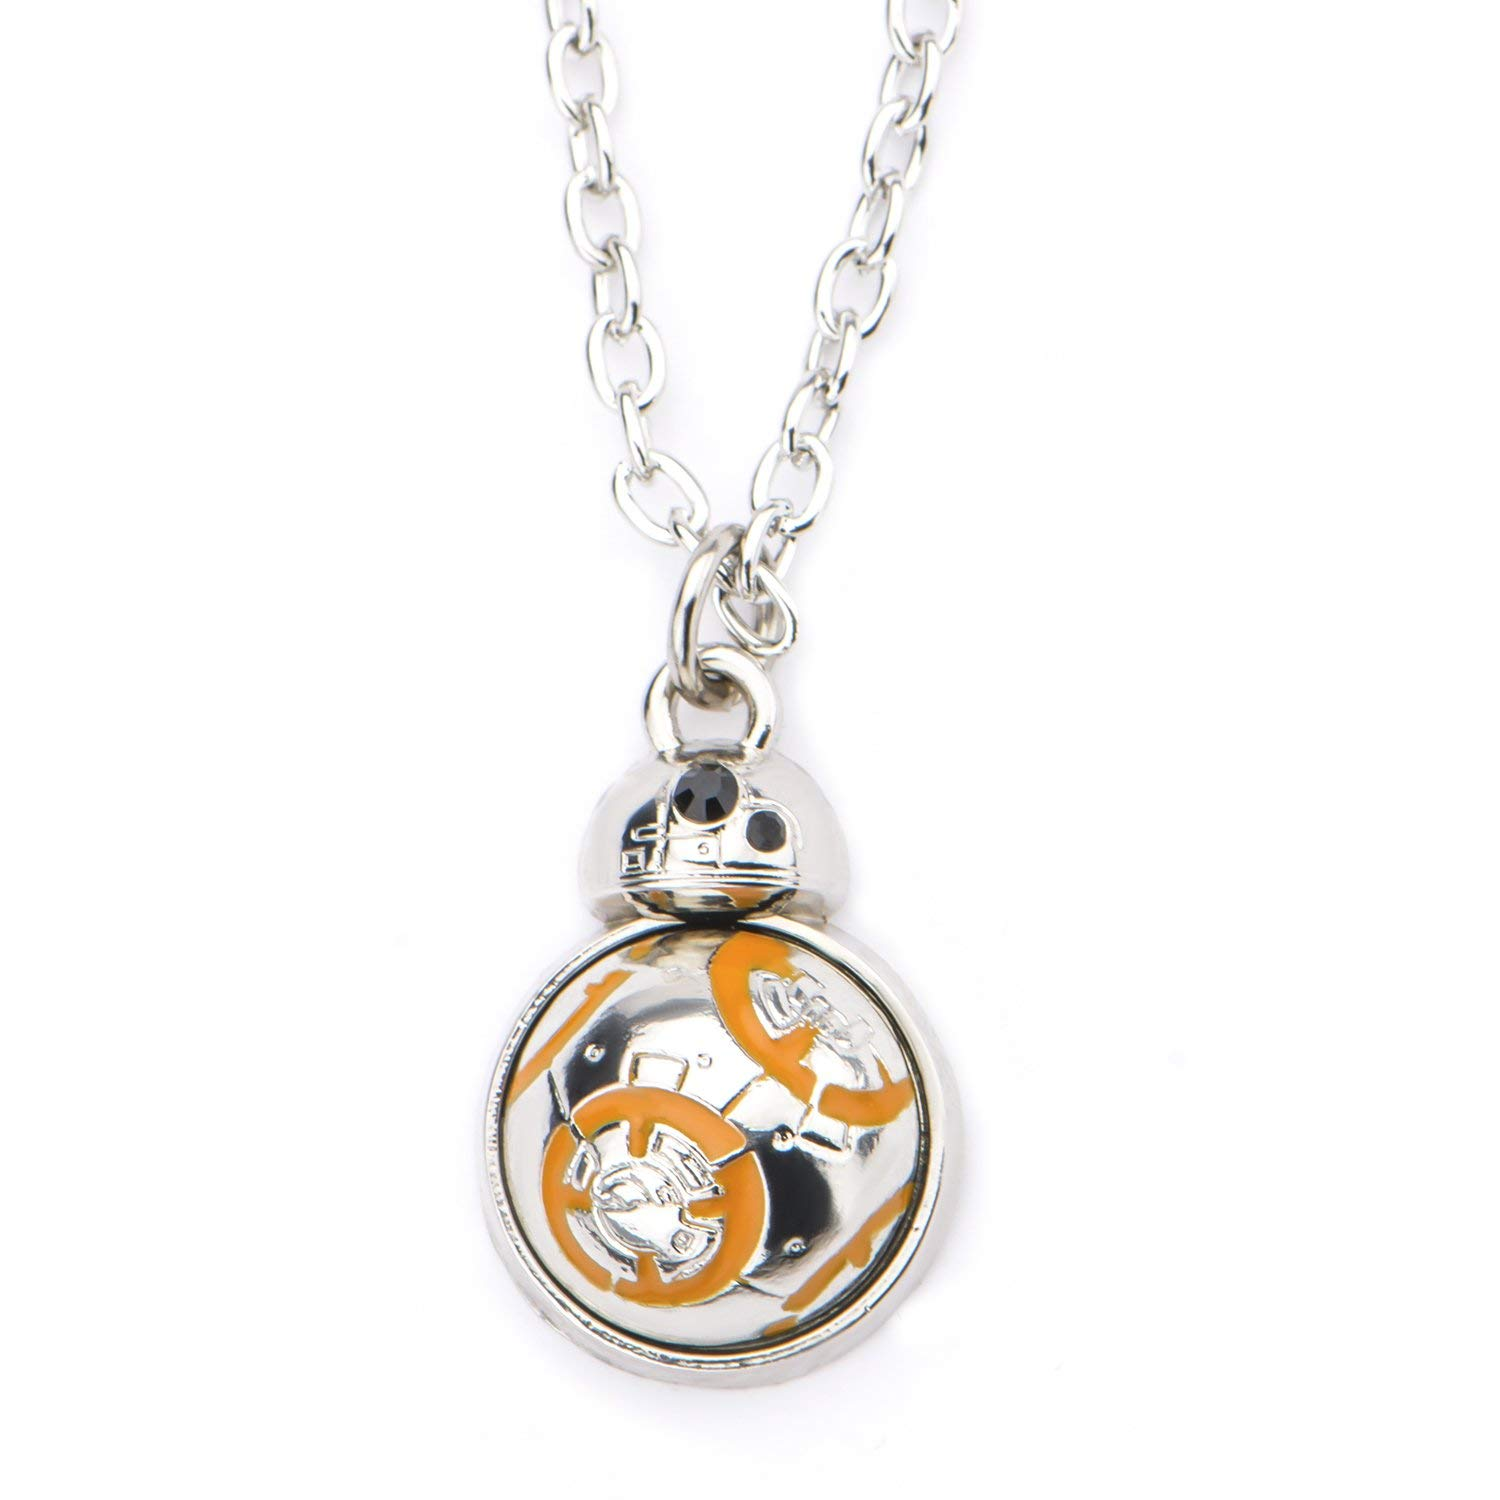 Body Vibe x Star Wars BB-8 Flat Backed Necklace on Amazon